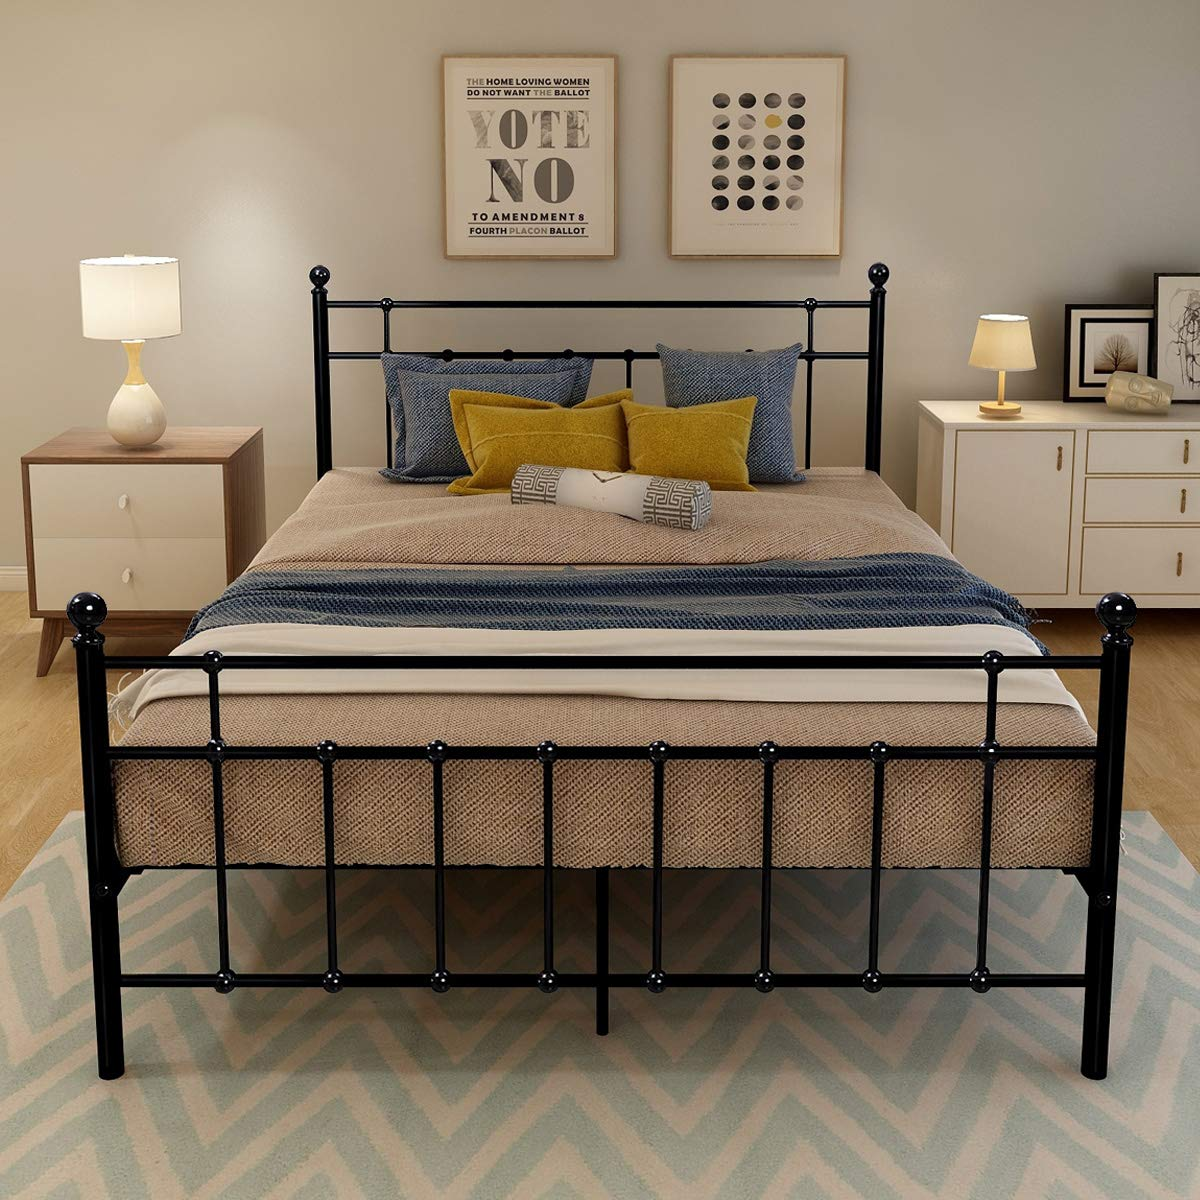 wholesale dealer a1fec a1563 Metal Bed Frame Queen Size with Modern Style Headboard and Footboard Steel  Slat SupportAssemble Easily Mattress on top Basics Queen Bed Frame Black ...